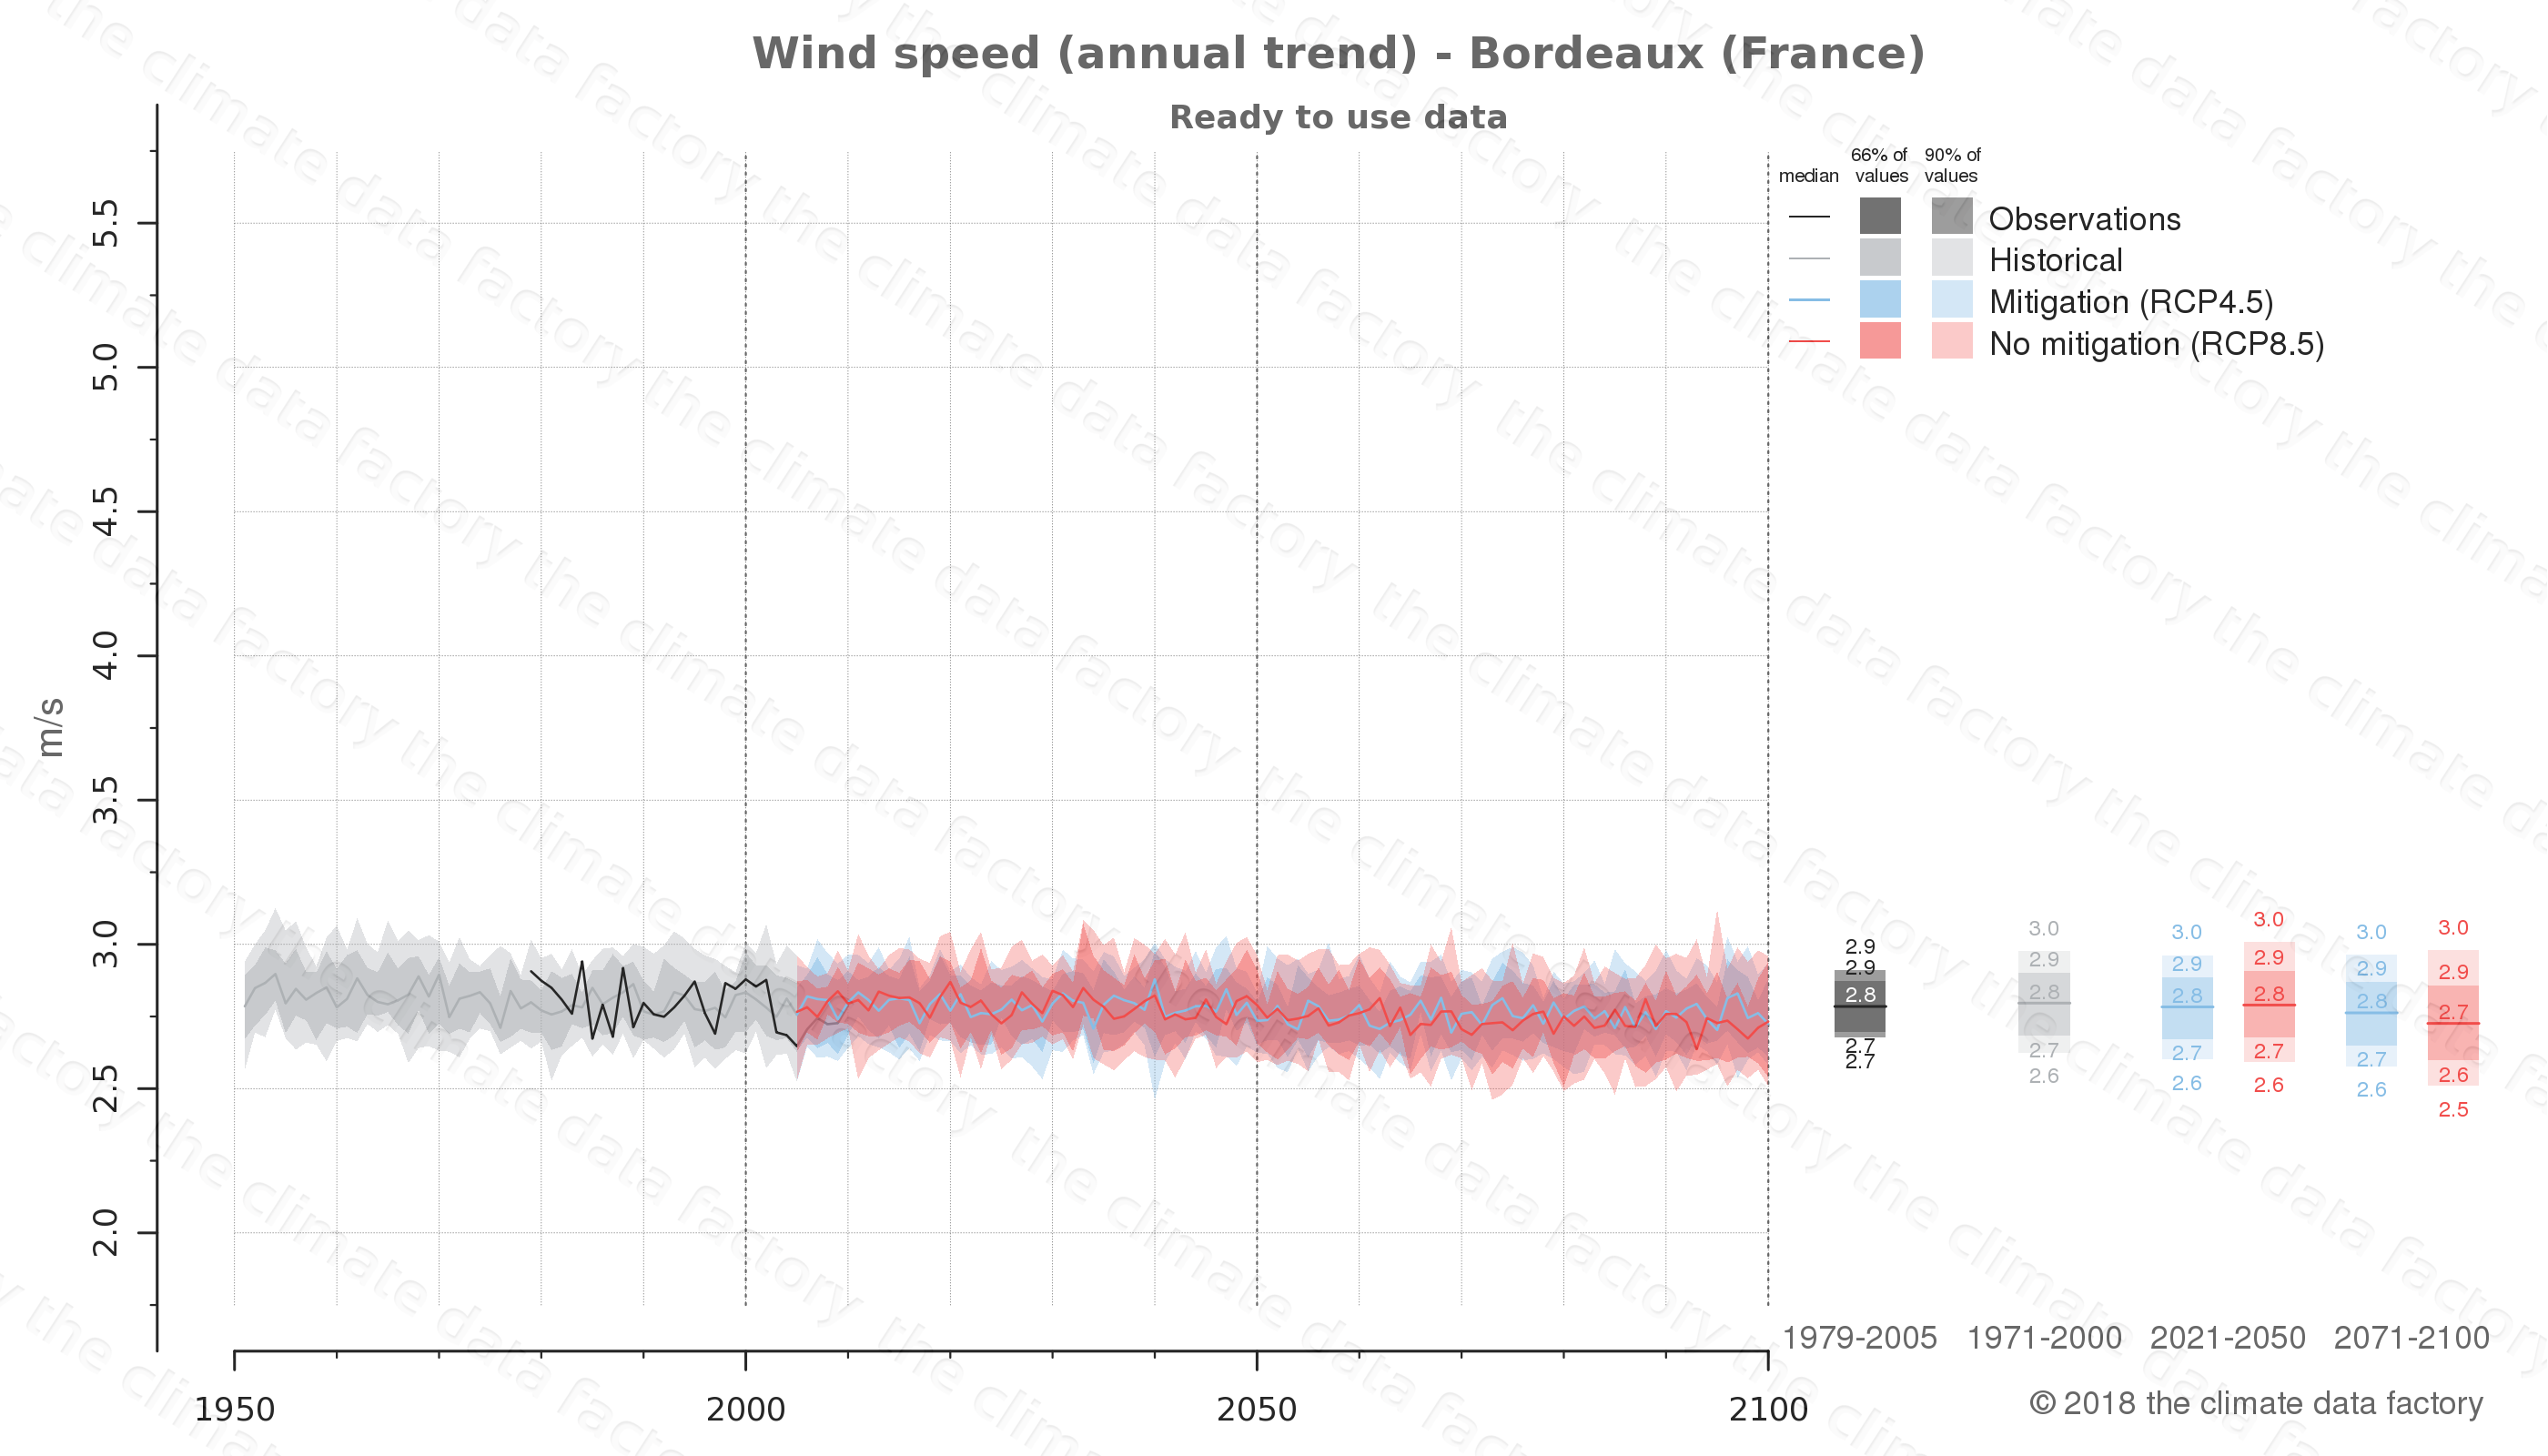 climate change data policy adaptation climate graph city data wind-speed bordeaux france